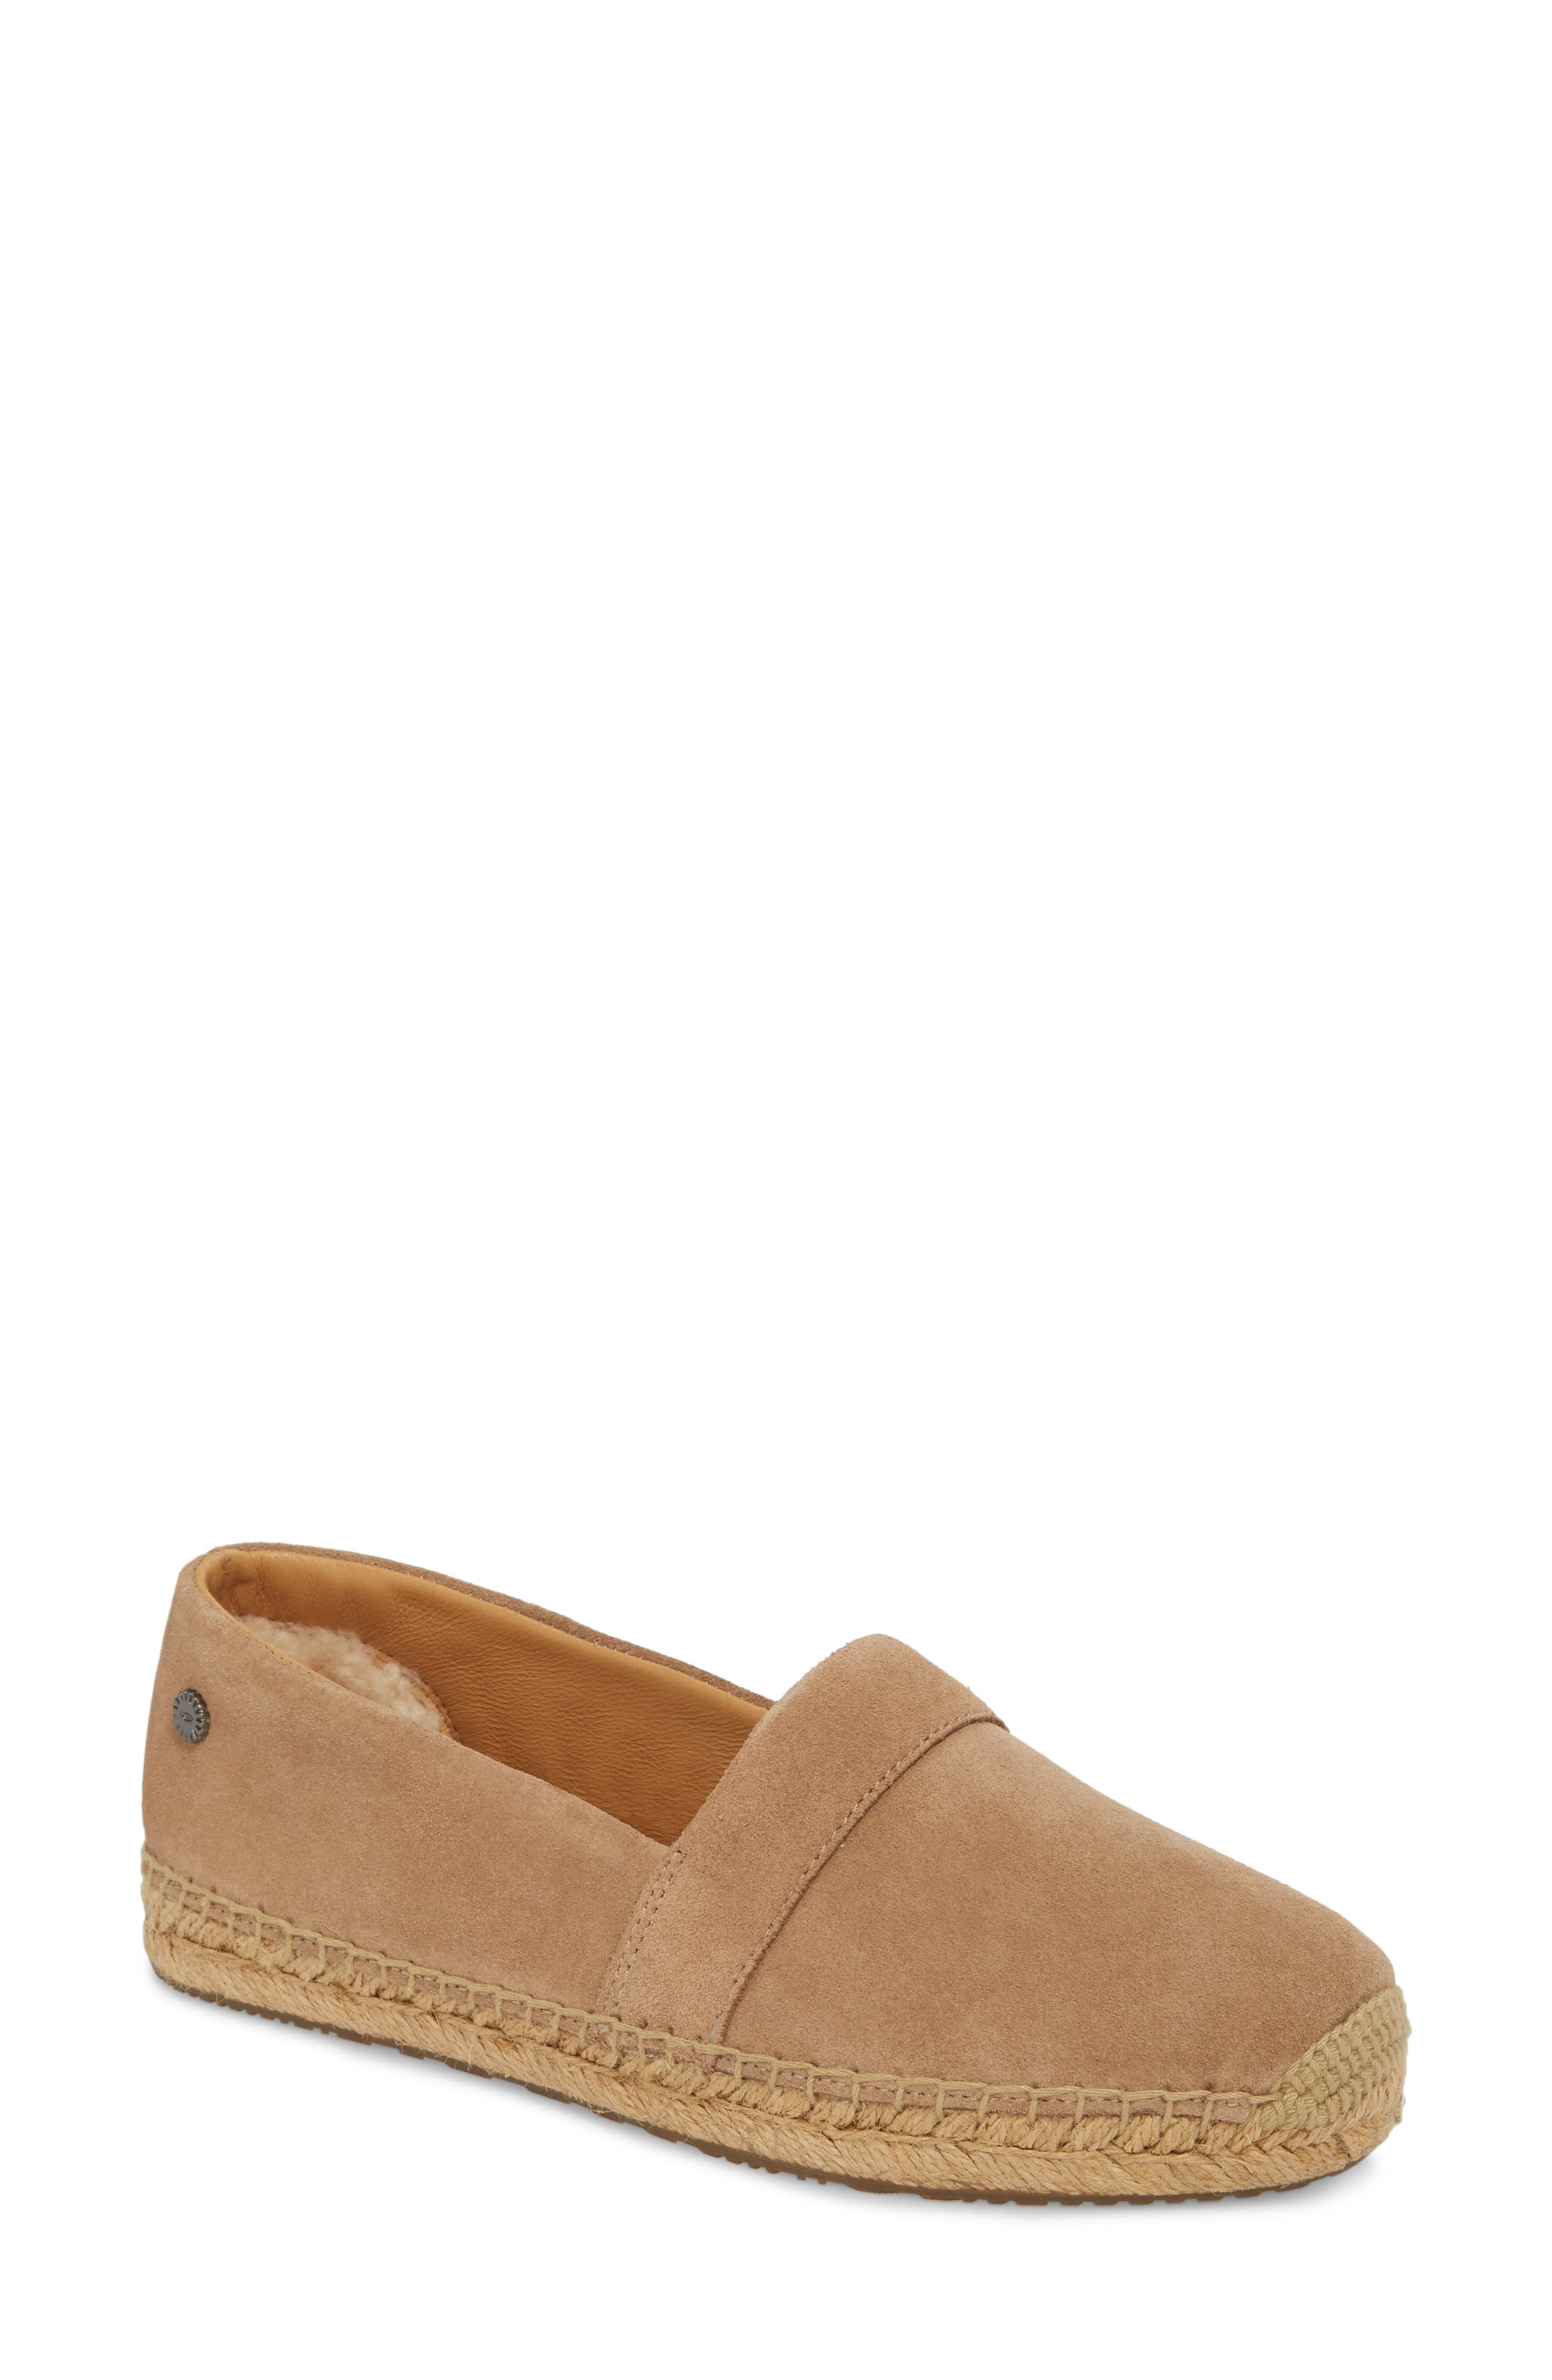 Reneda Espadrille Slip-On,                         Main,                         color, 250